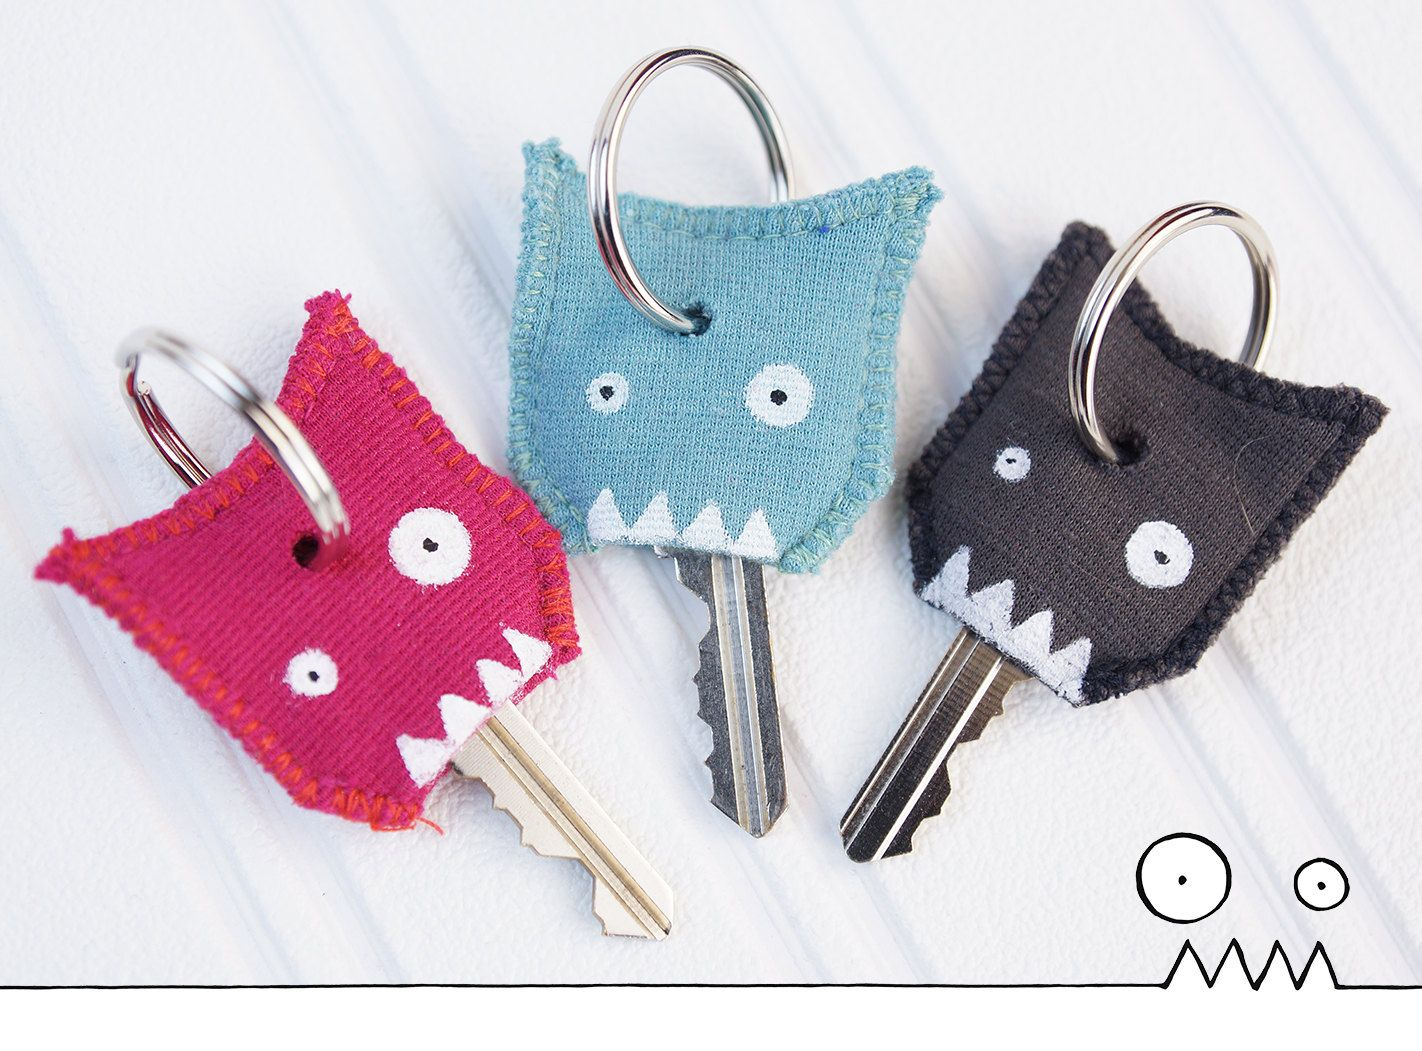 Kit of 3 Funky key cover key cap fabric monster color gift free shipping (20.00 CAD) by LesFunky